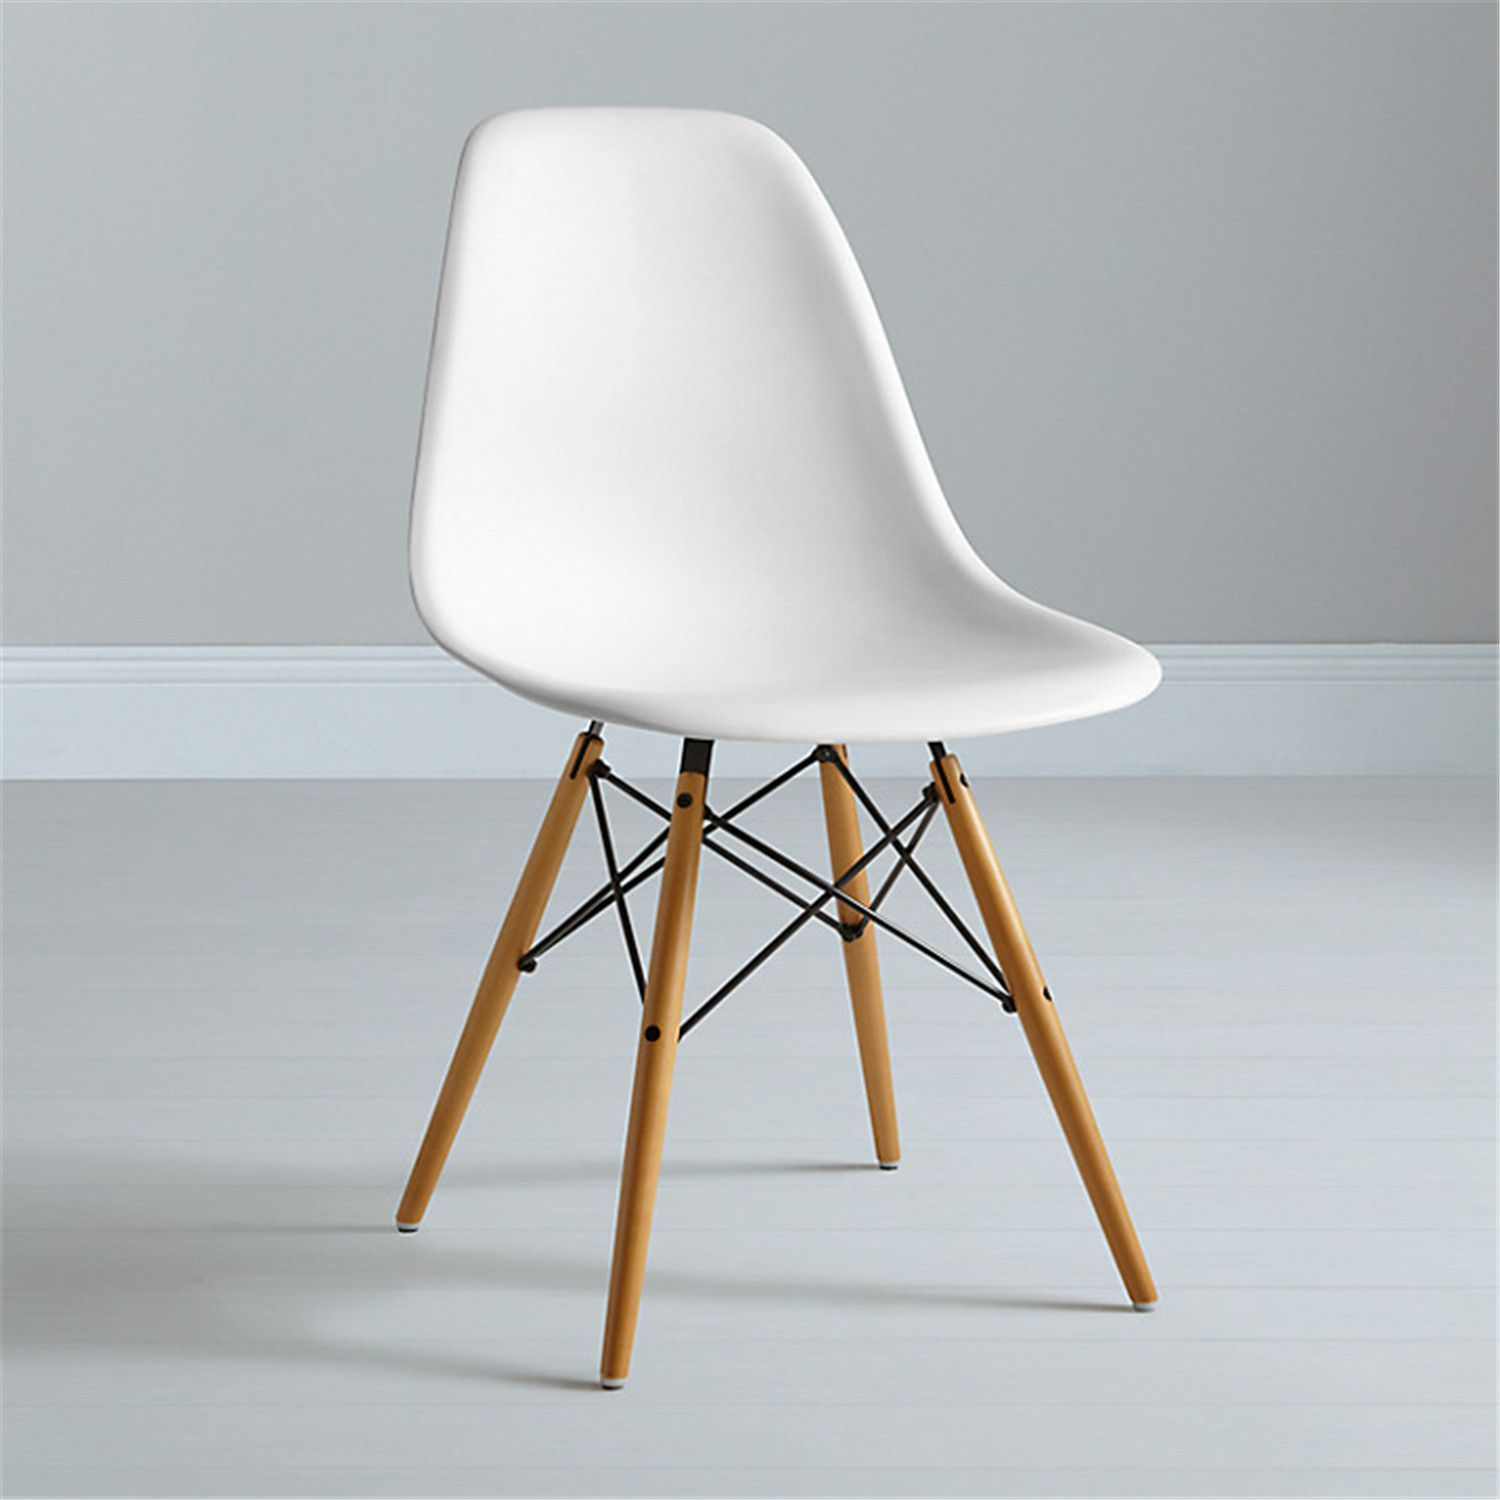 Eames DSW Replica Eiffel Dining Chair WHITE dining chair